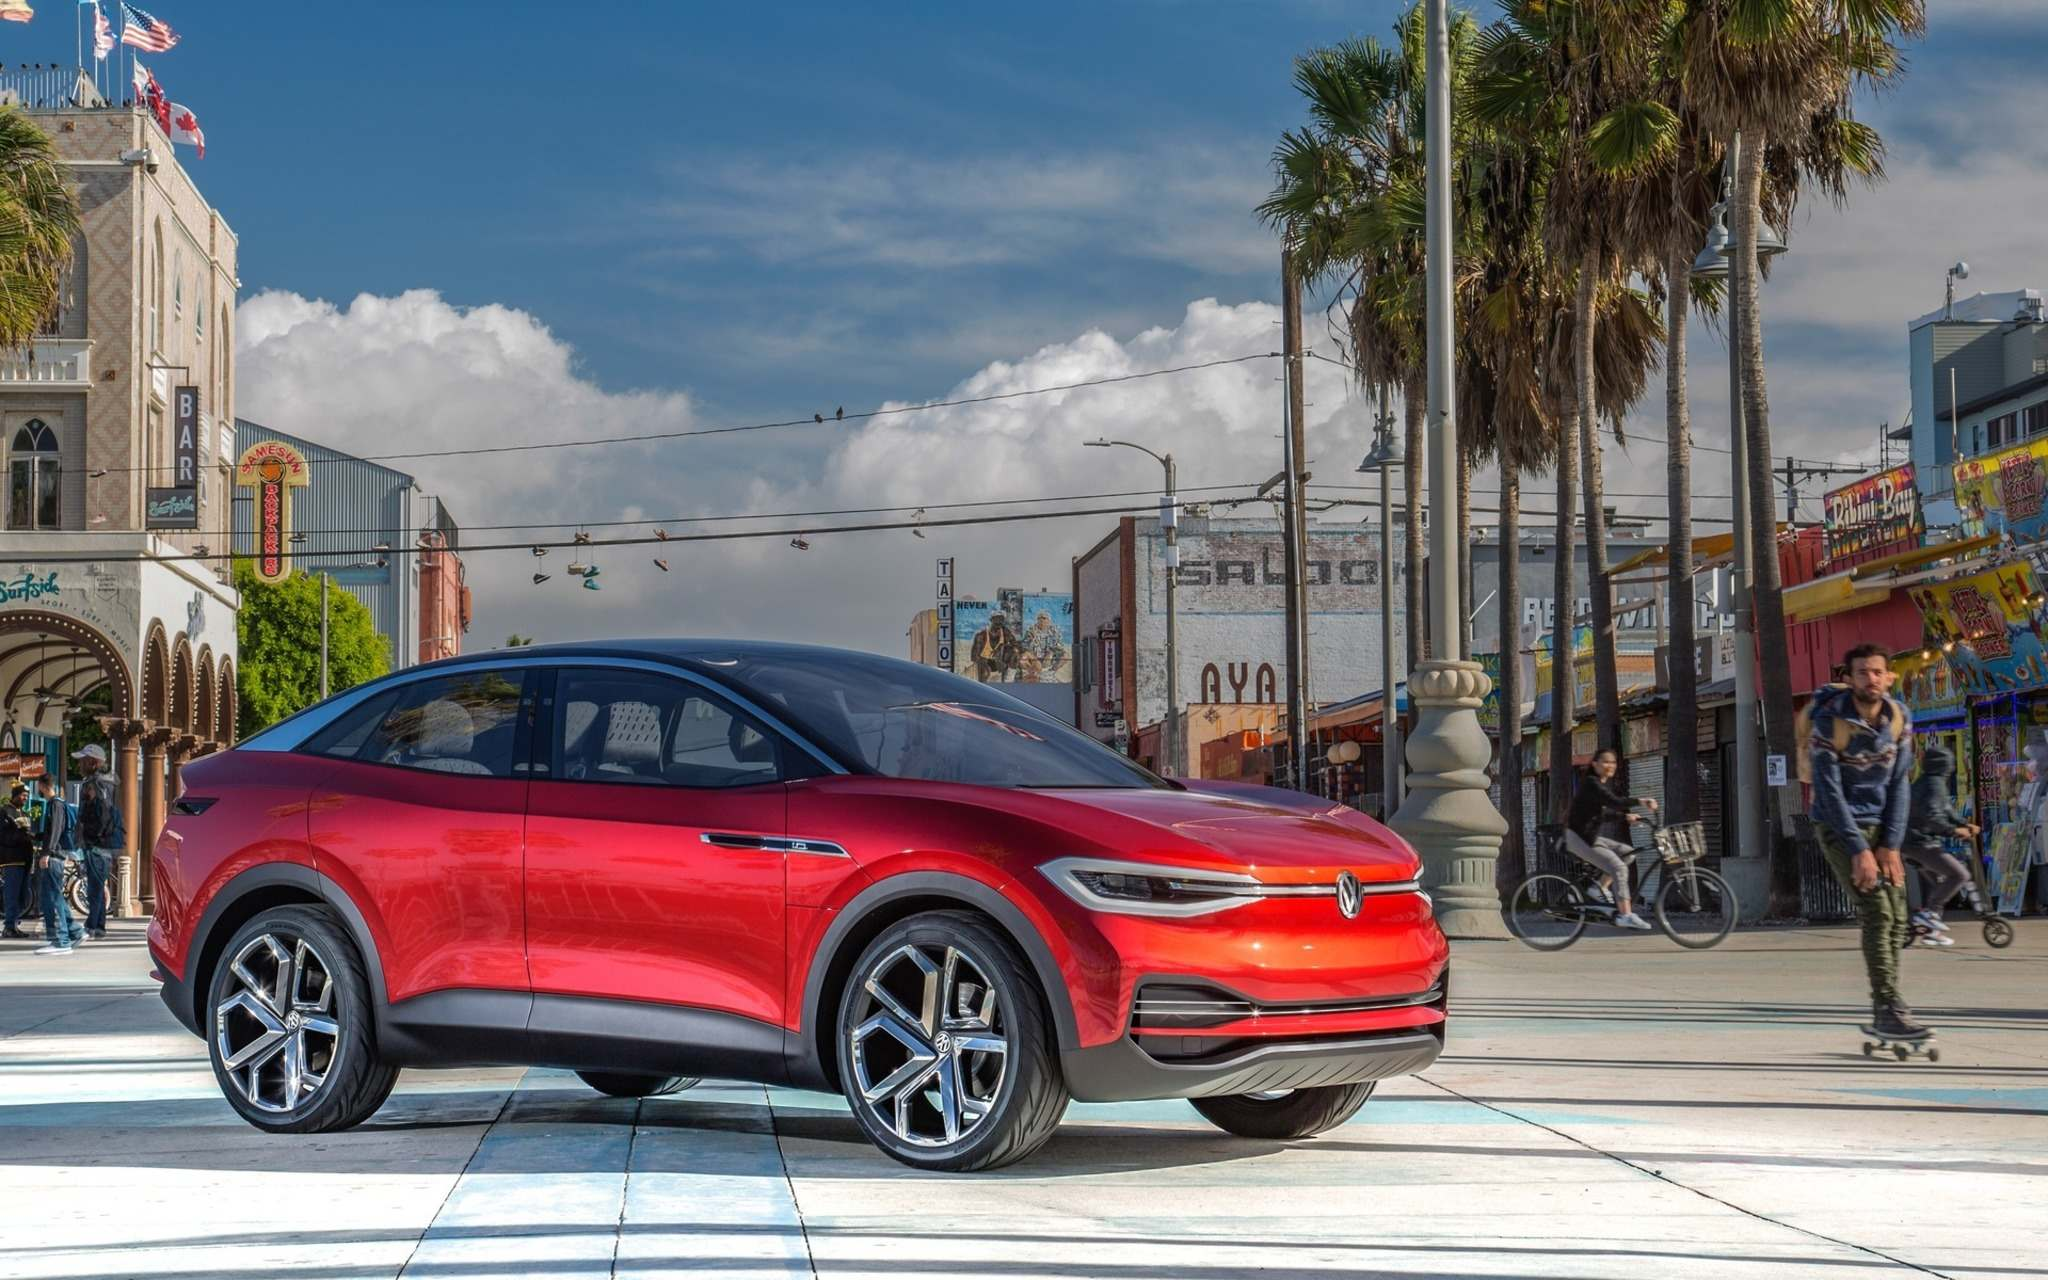 VolkswagenVolkswagen's first electric vehicles based on its new MEB platform will go on sale in Canada in 2020.